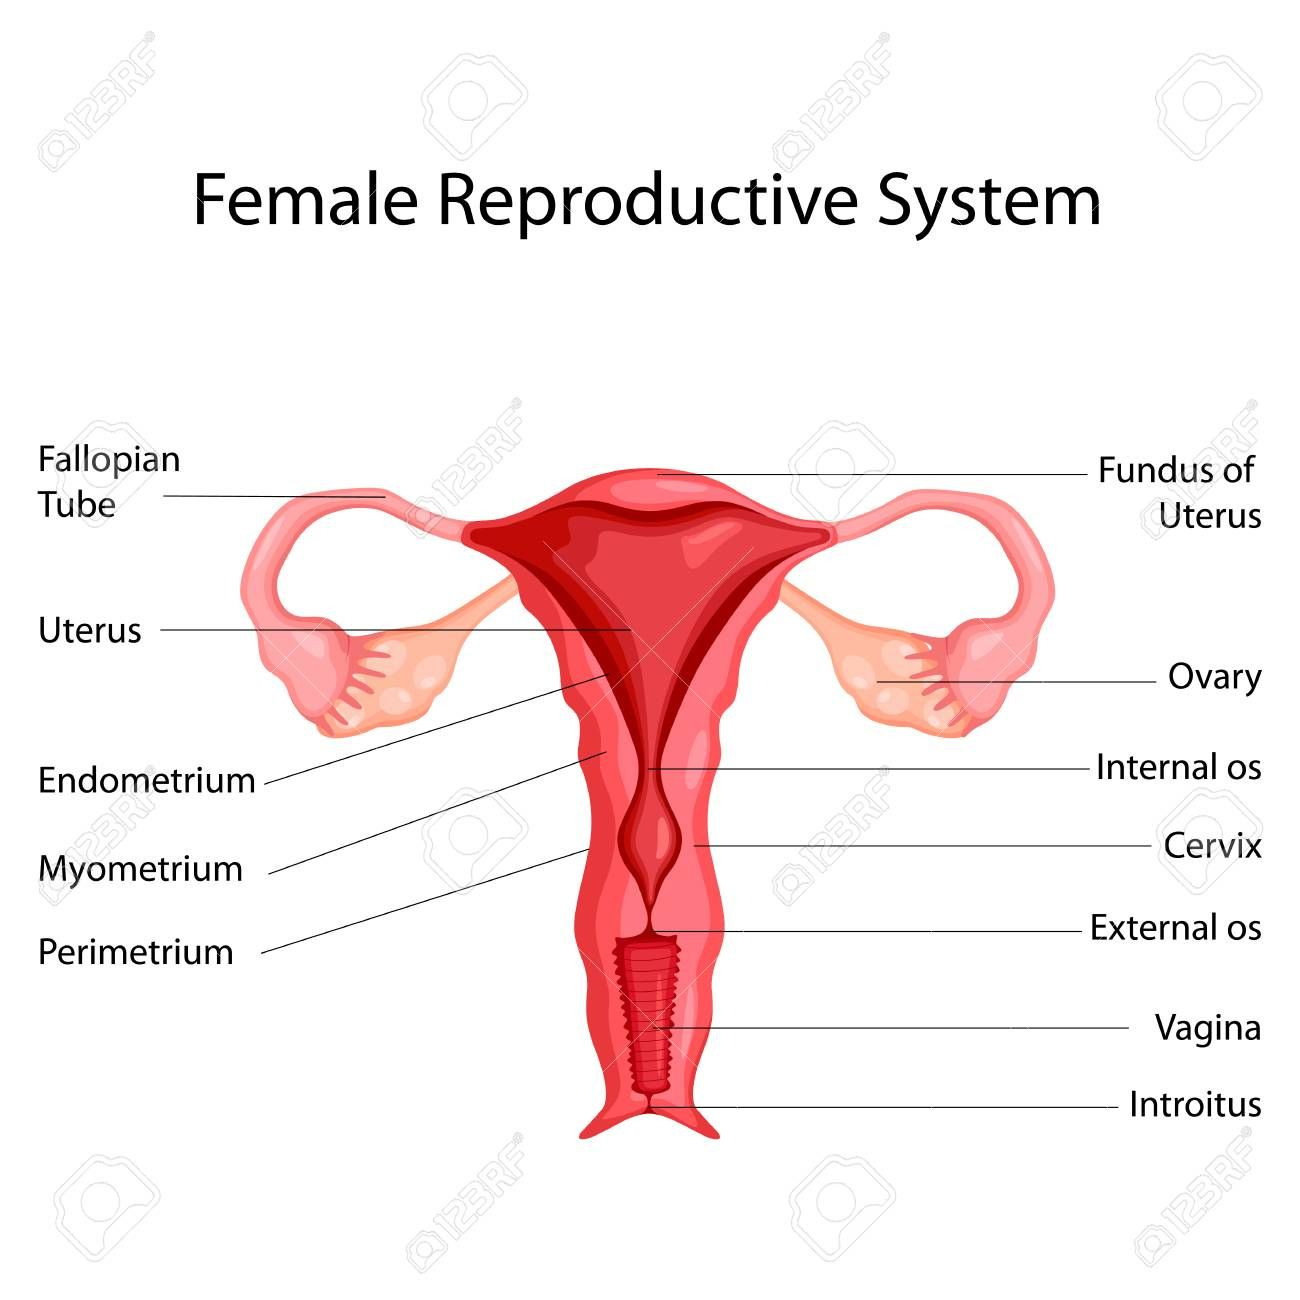 medium resolution of image of female reproductive system diagram image of female reproductive system diagram education chart of